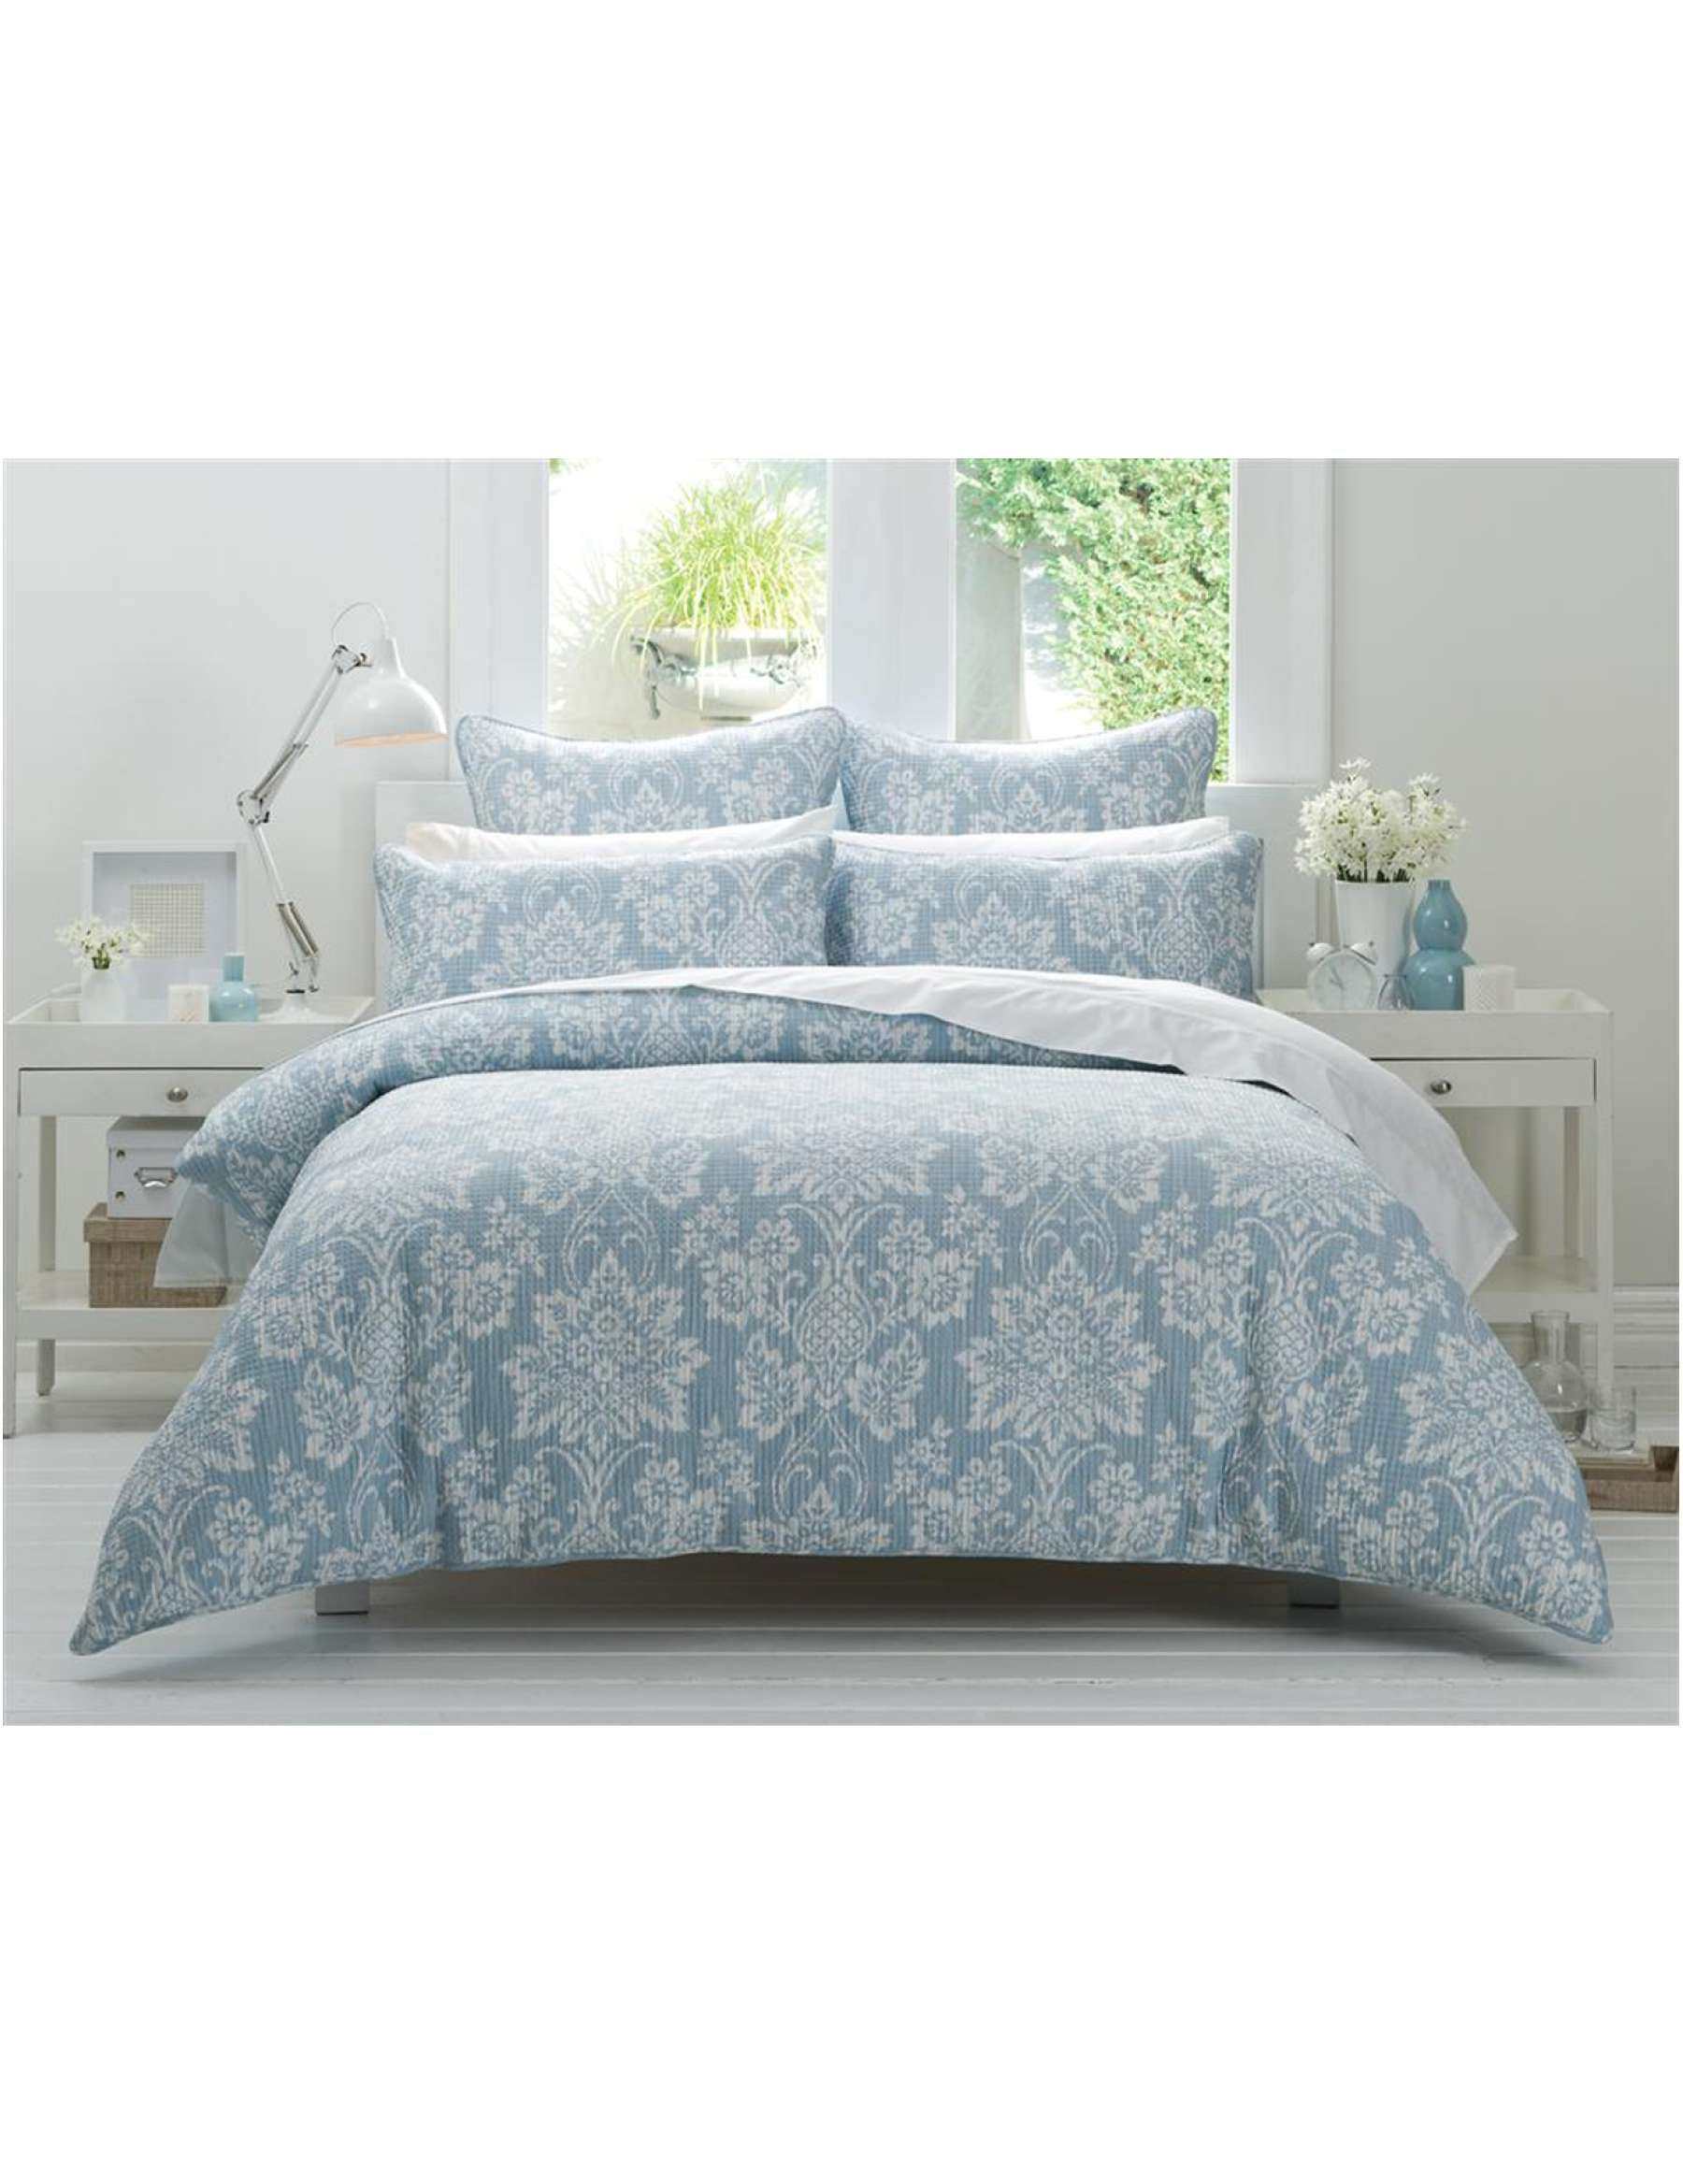 David Jones - Cotton House Rhea Double Bed Quilt Cover | Quilt ... : quilt cover sets david jones - Adamdwight.com